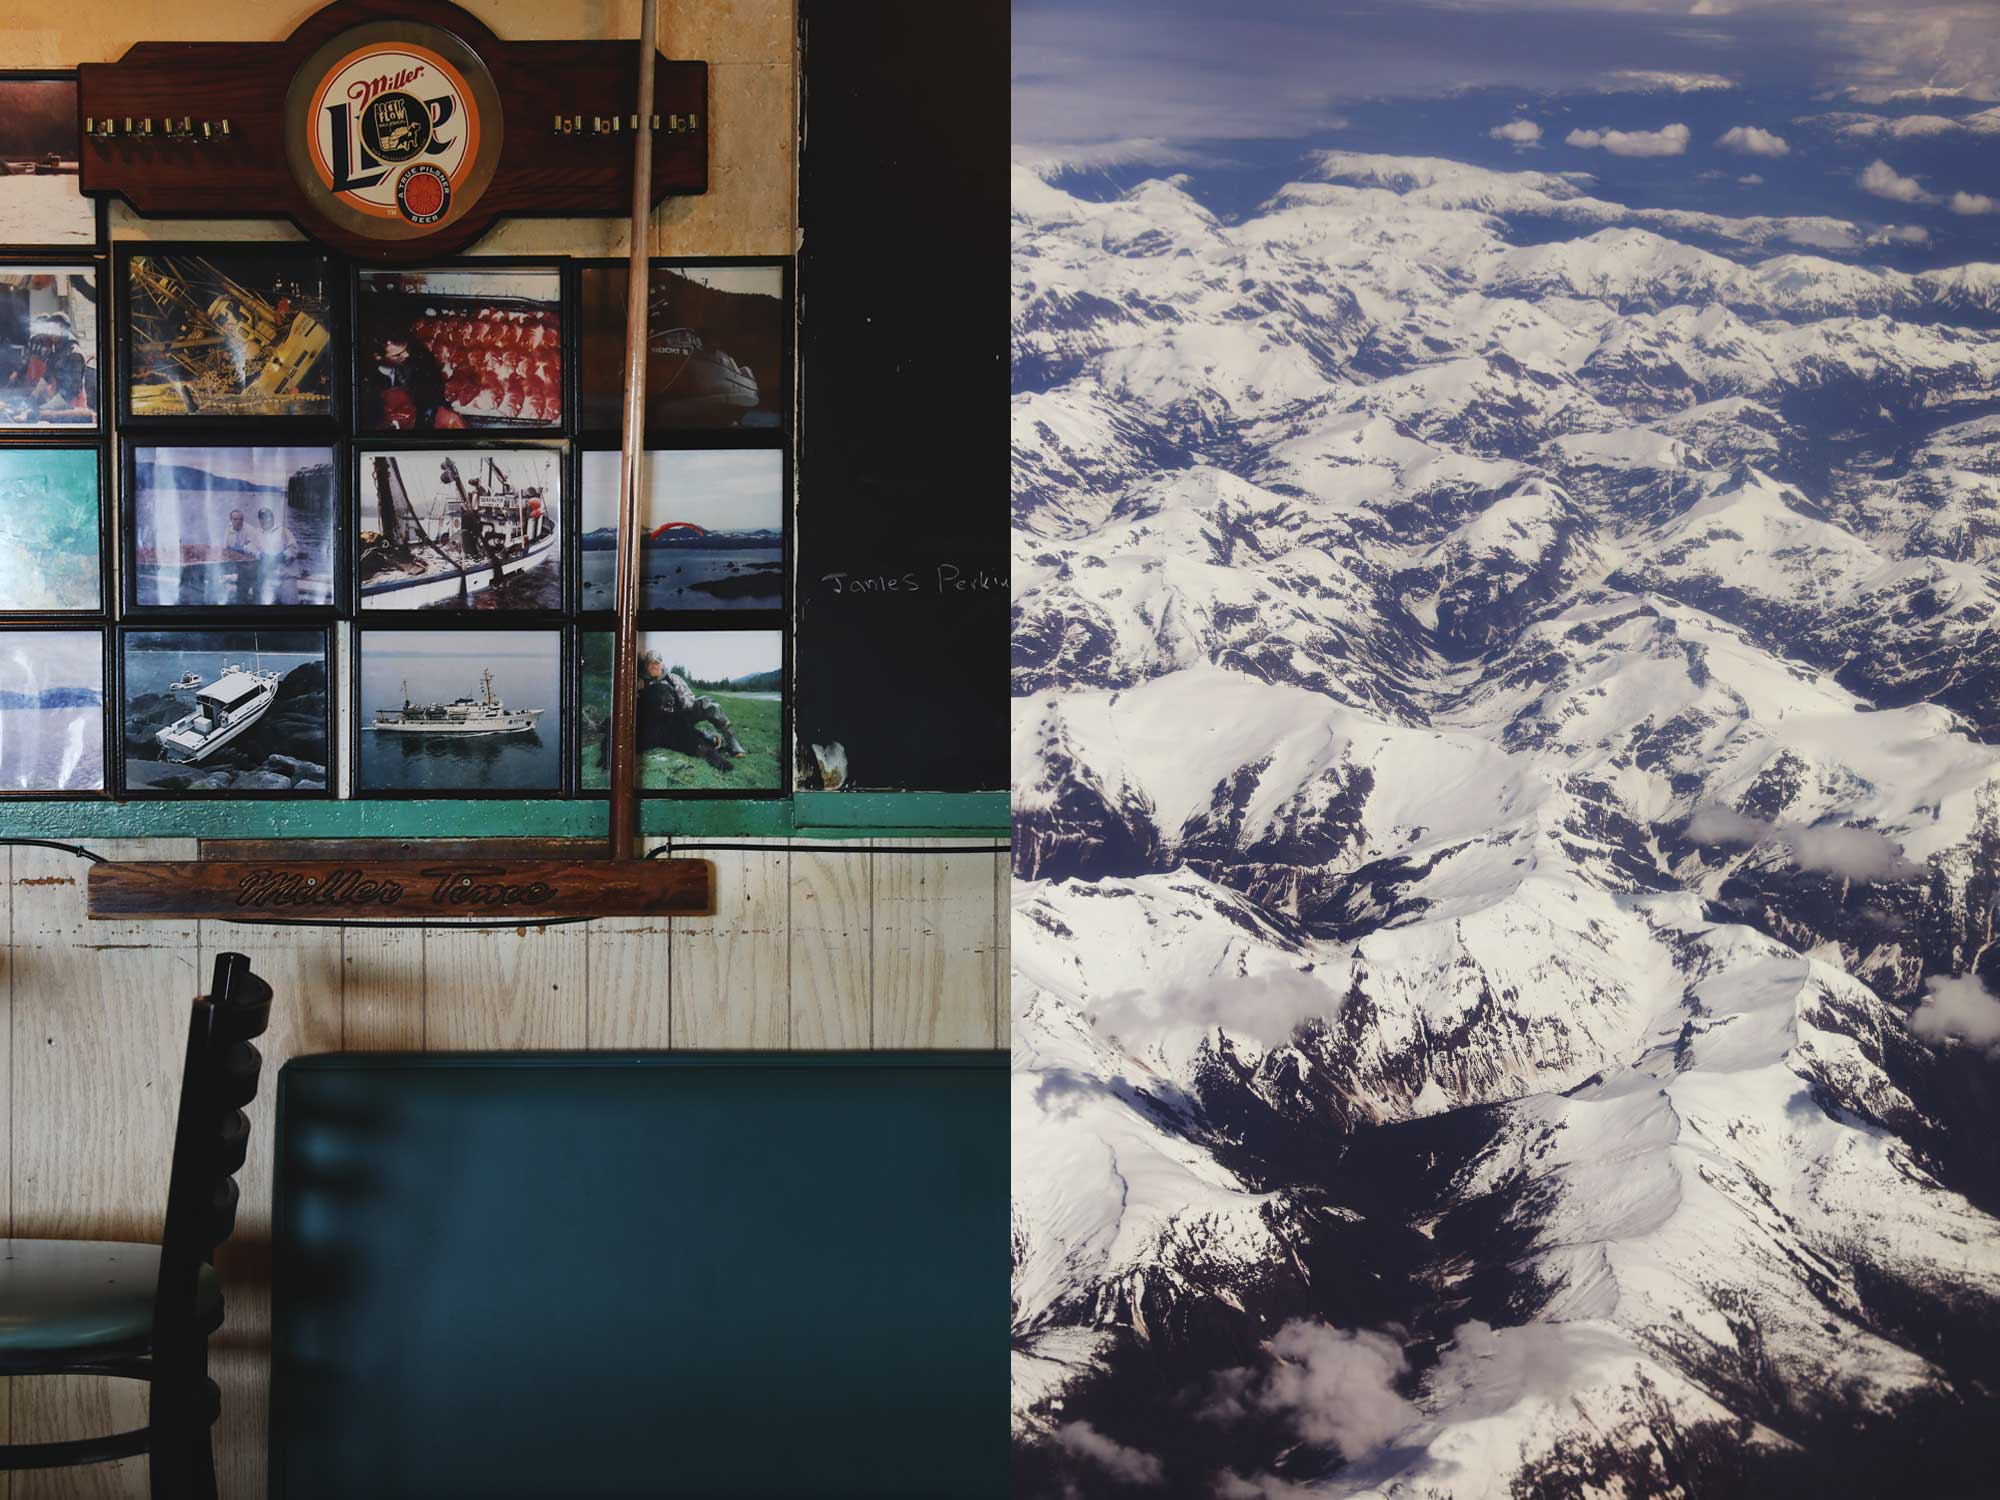 The Dive Bar at the End of the World